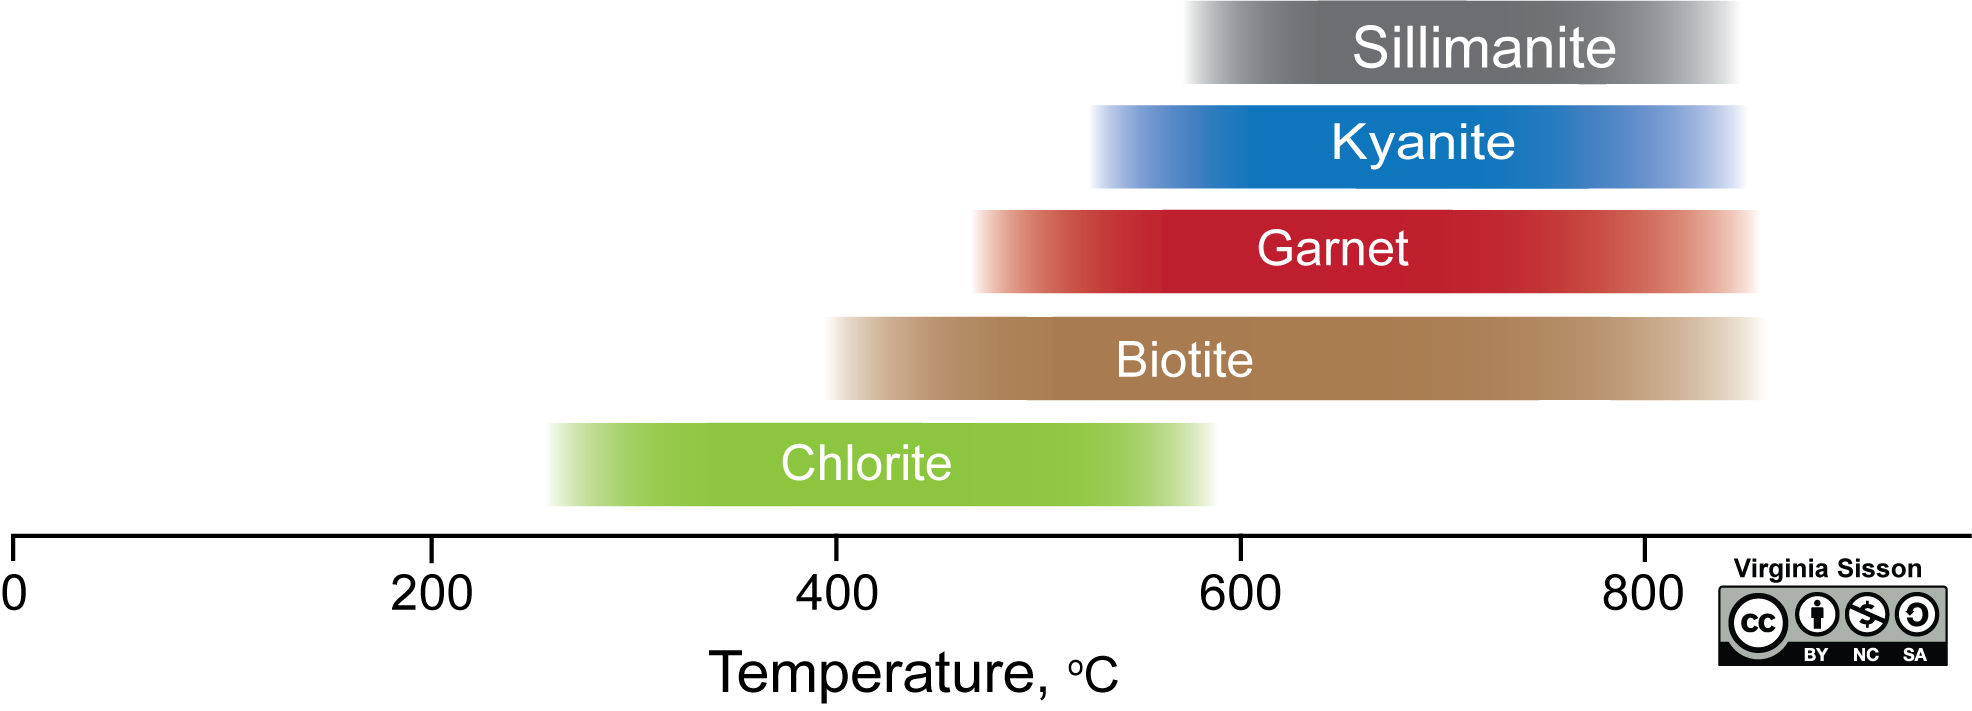 Index minerals for identification of metamorphic rocks and their temperature ranges.